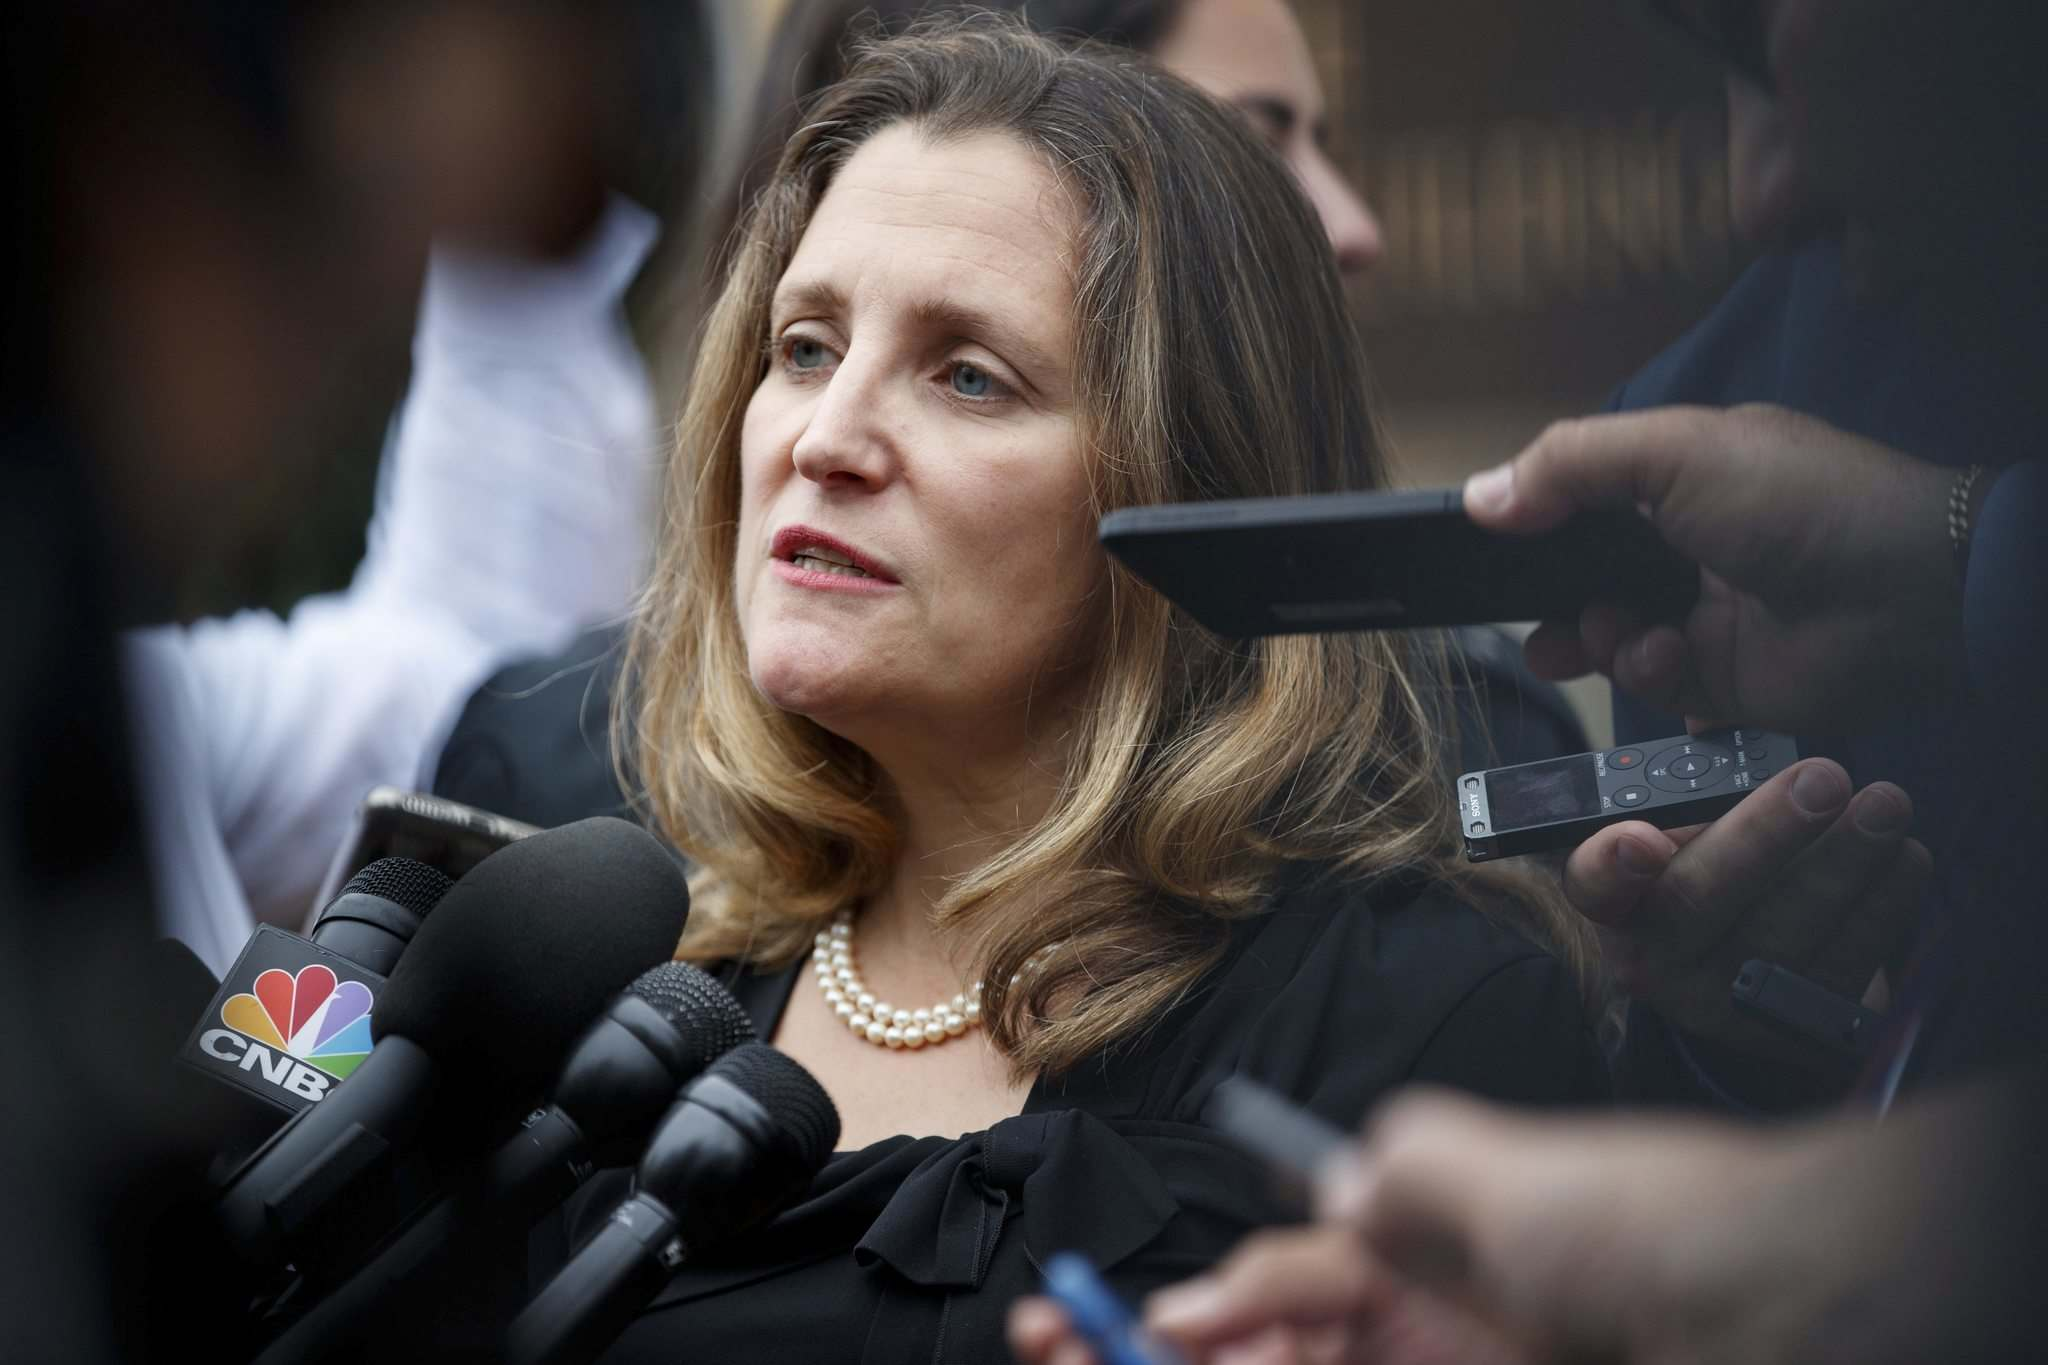 Foreign Affairs Minister Chrystia Freeland (Carolyn Kaster / The Associated Press files)